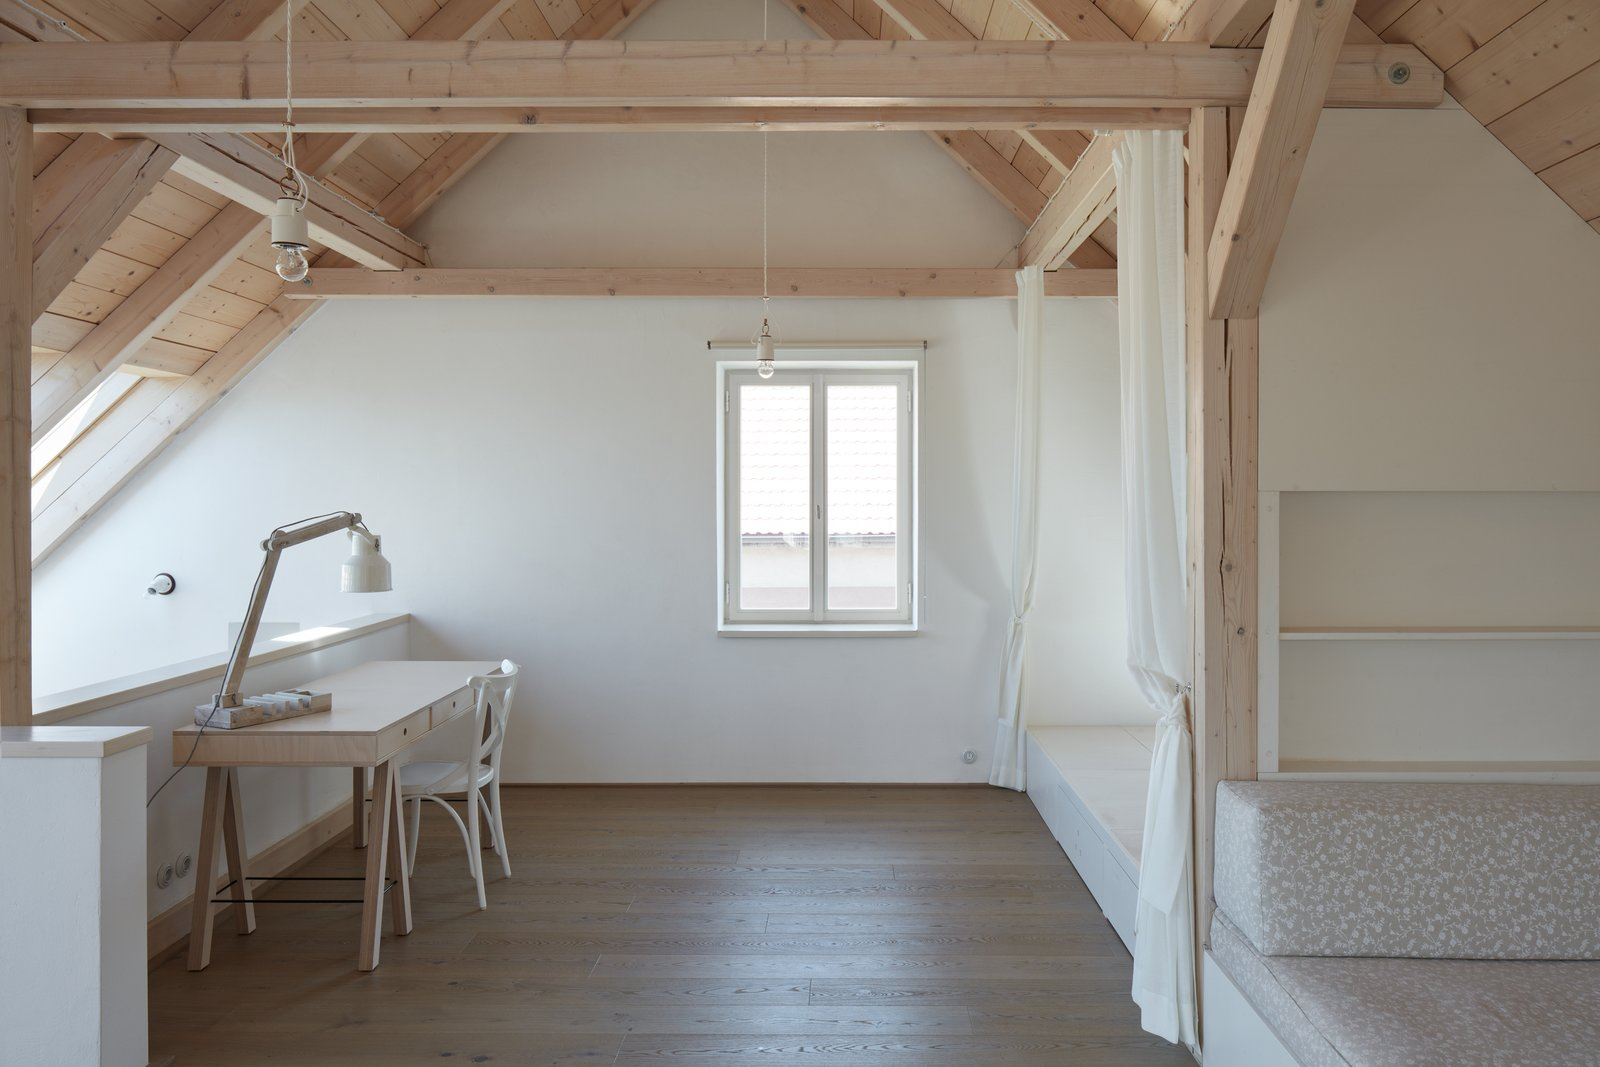 Tagged: Office, Lamps, Desk, Light Hardwood Floor, and Chair. House by the Forrest by BoysPlayNice Photography & Concept